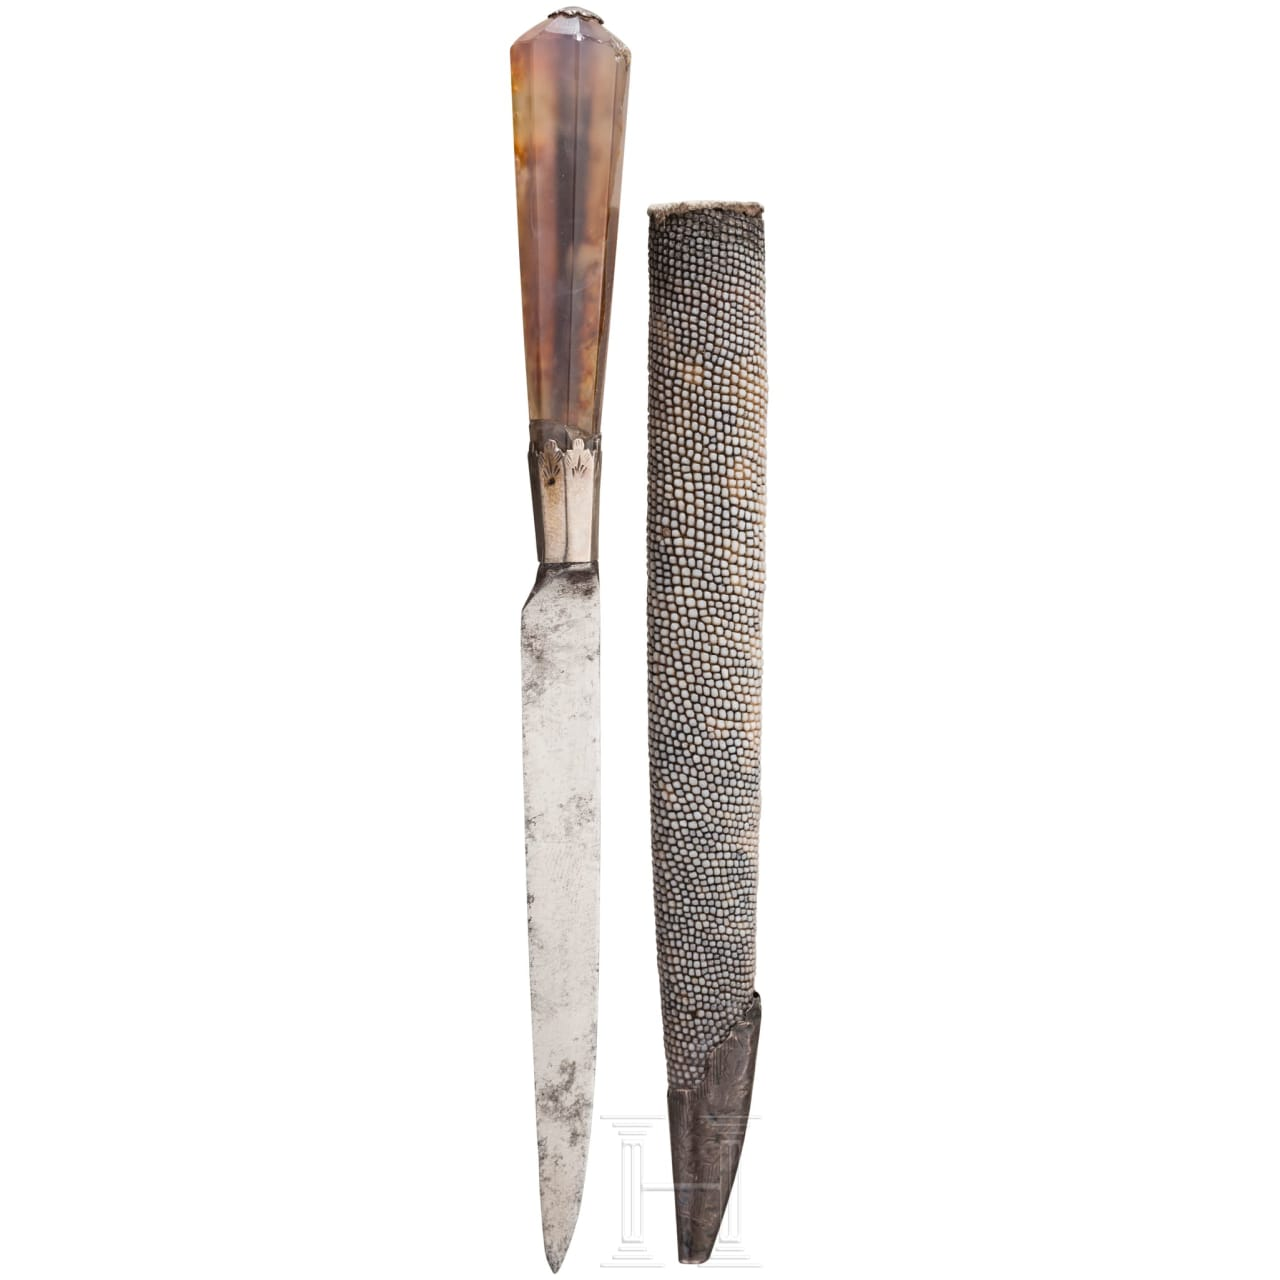 A small eating knife with ray skin scabbard, England, 1st half of the 18th century